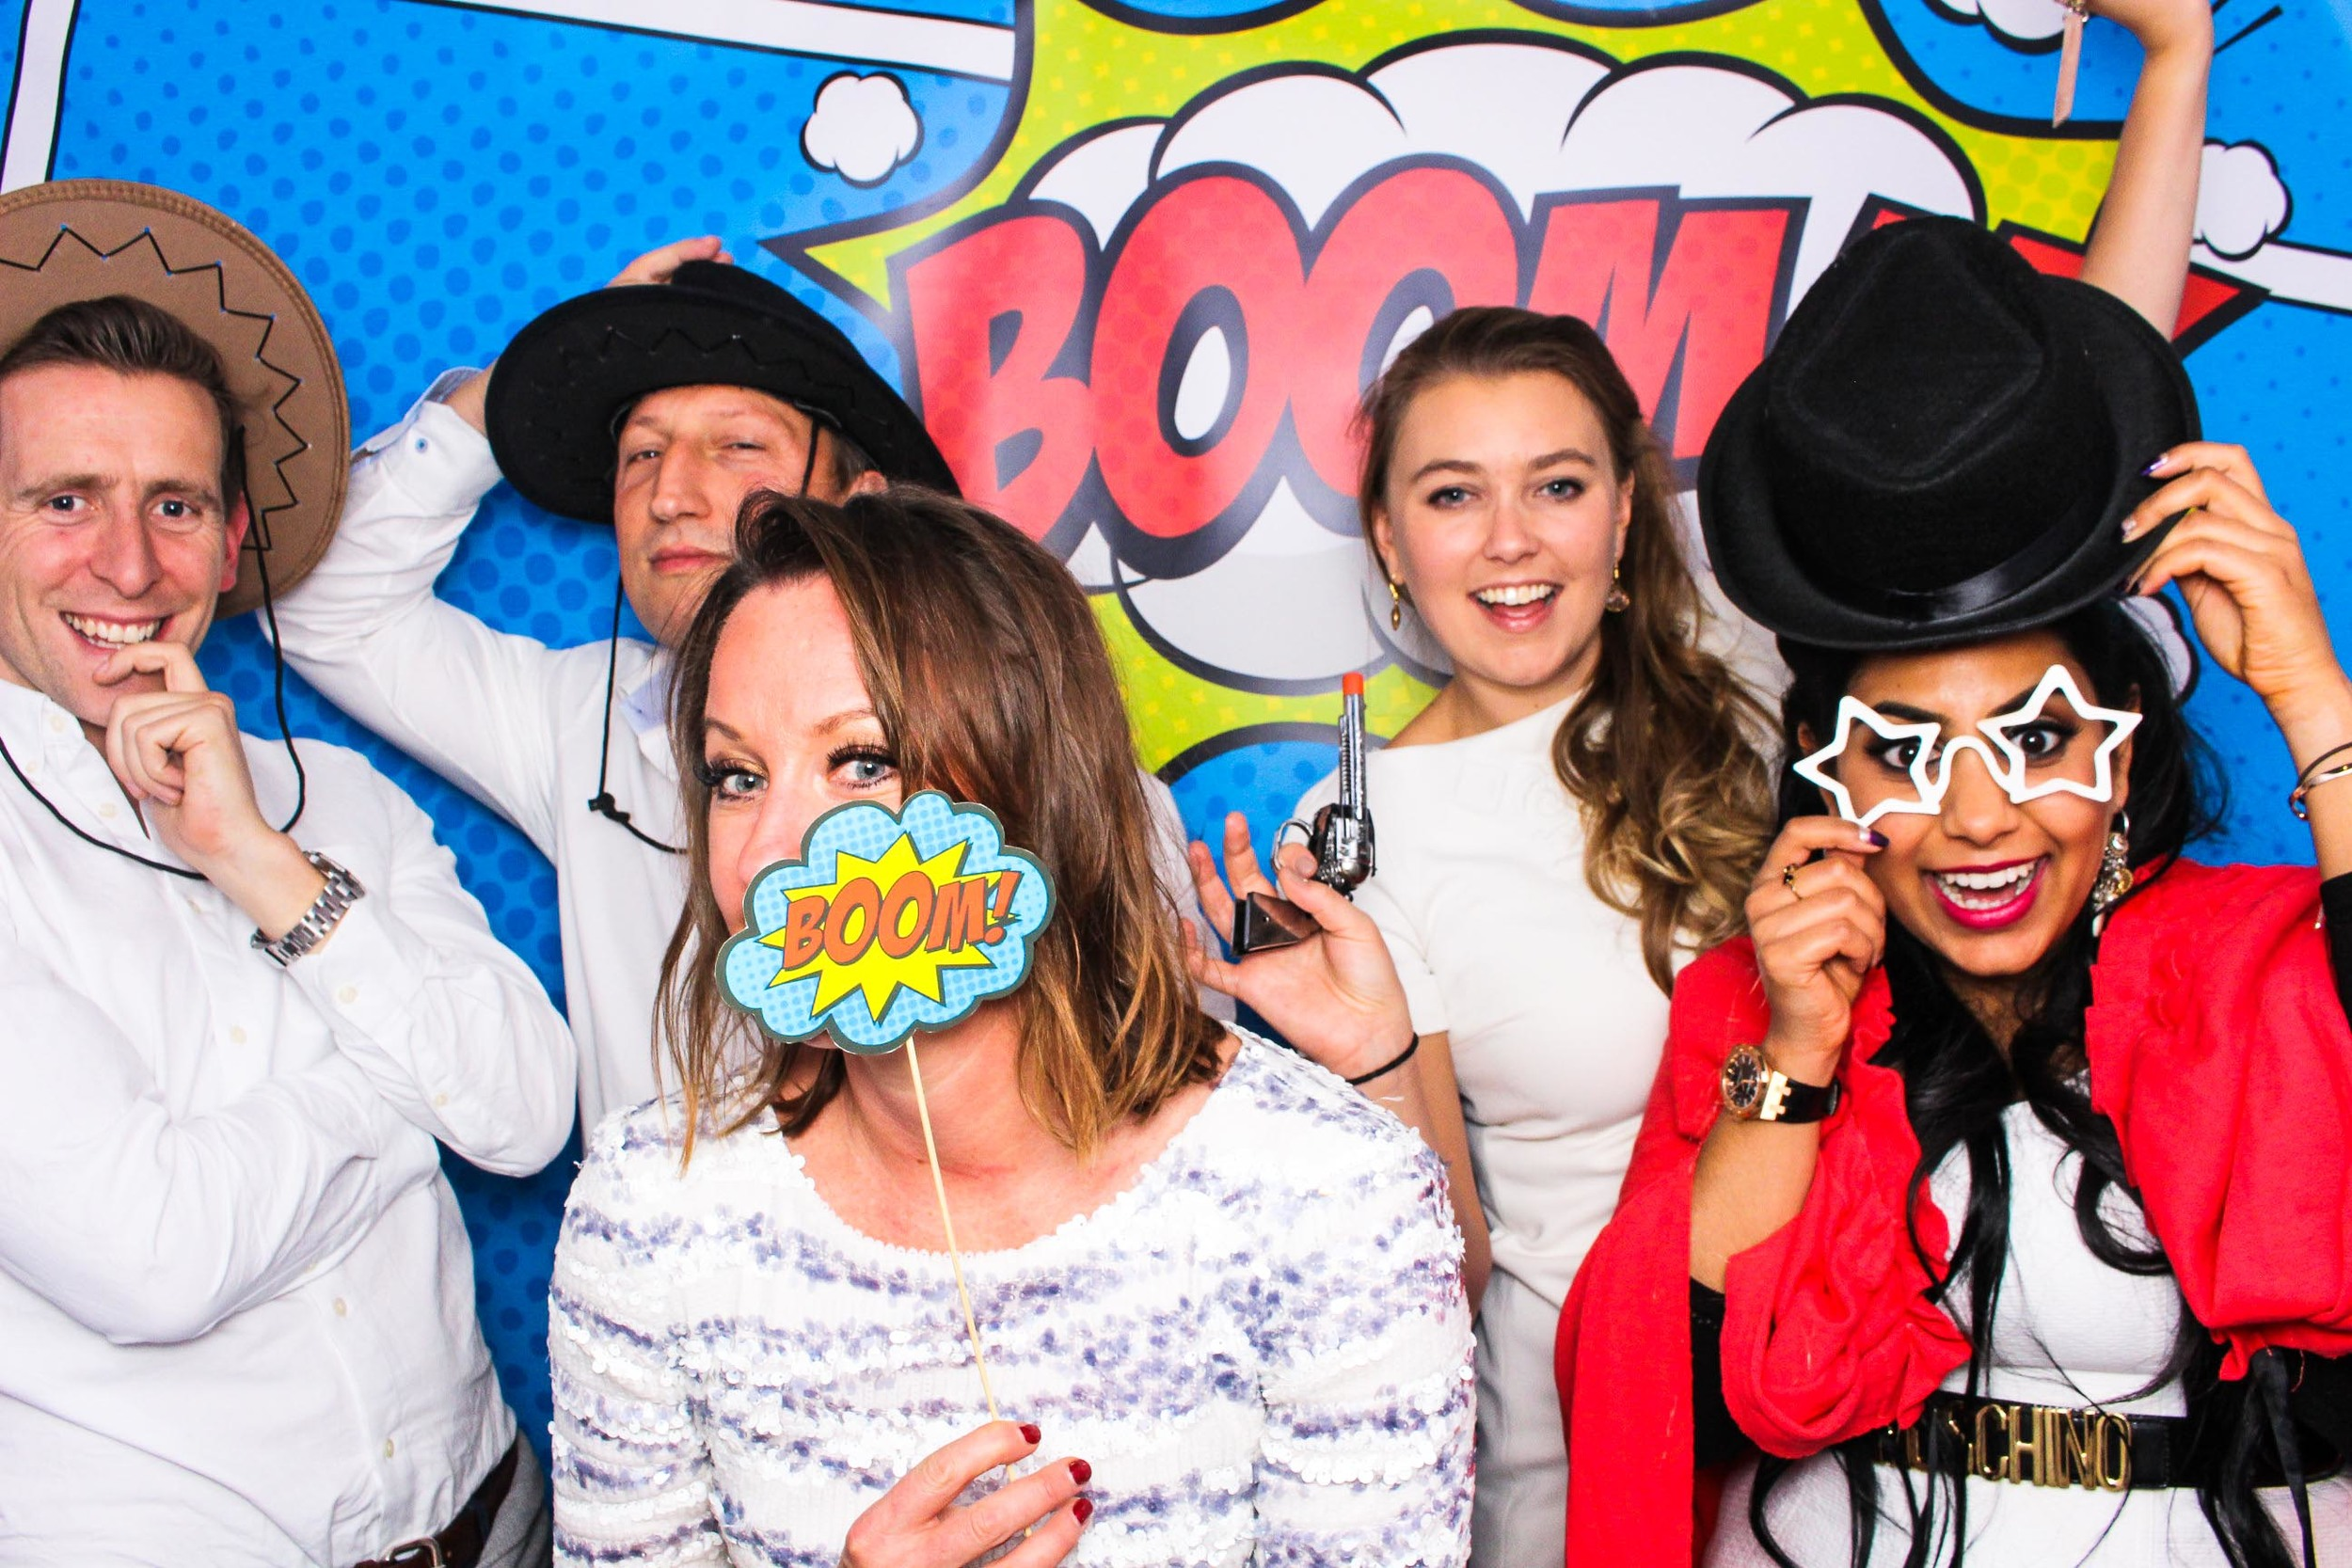 Fotoauto Photo Booth Hire - Shop Direct-275.jpg